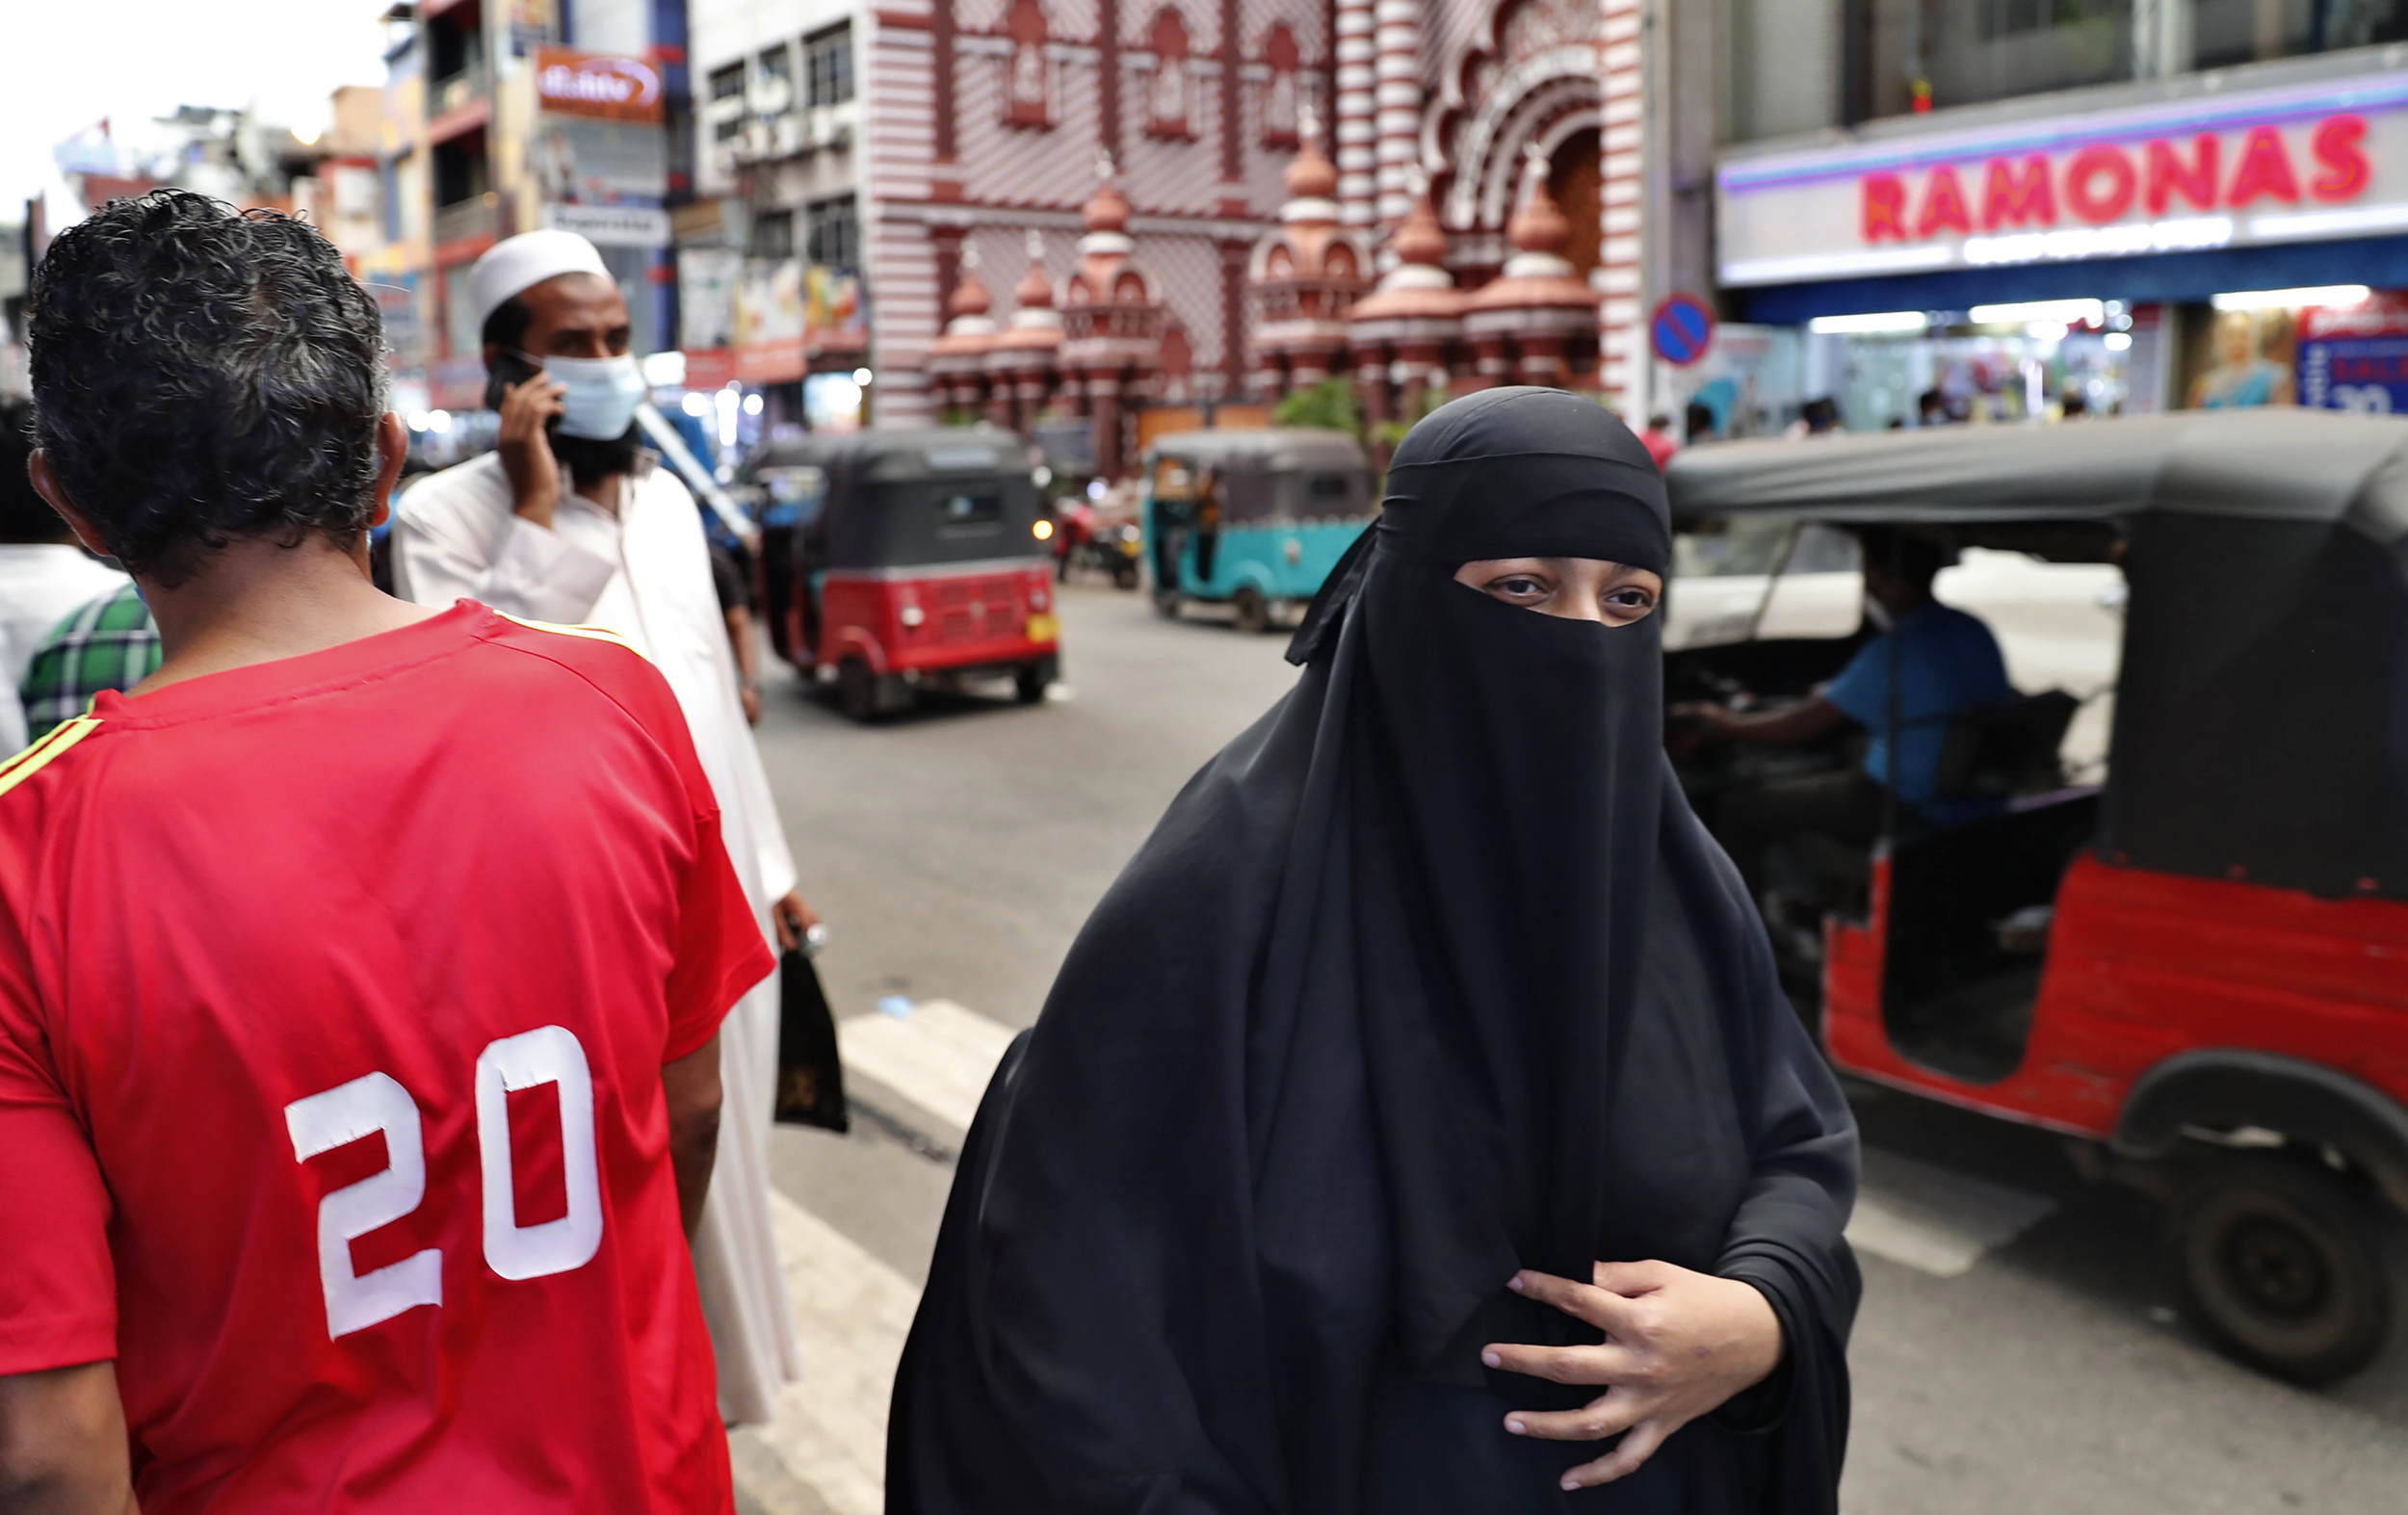 Srilanka To Ban Muslim Attire Burqa and Shut Down Over 1000 Islamic Schools